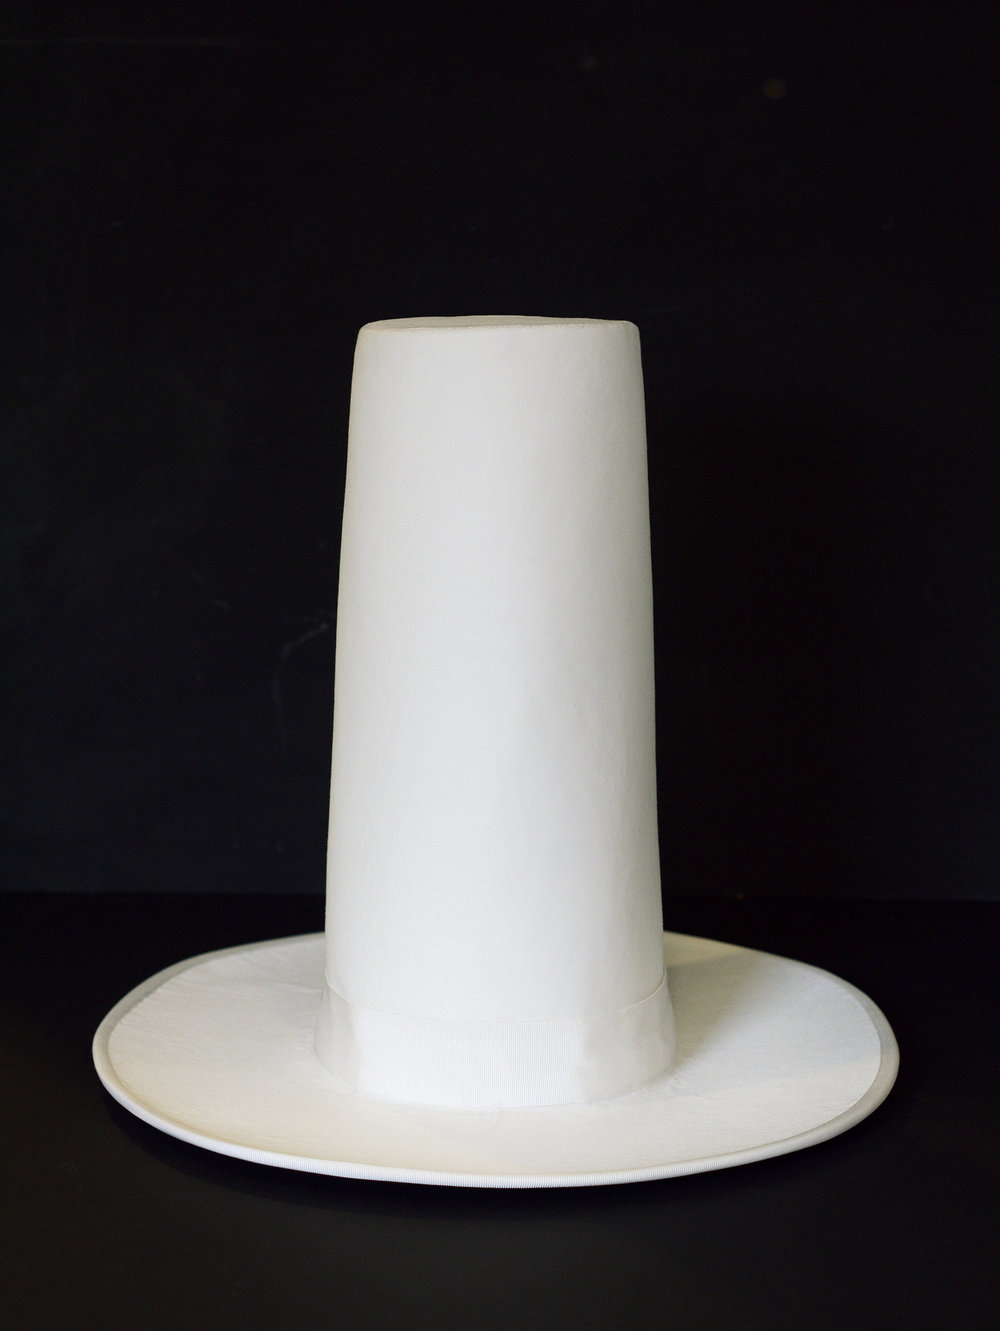 Hatt,  sculpture, 2012, h 35 cm (made by hat maker Sara Wikholm/Hats&Art by Sane Hatter)